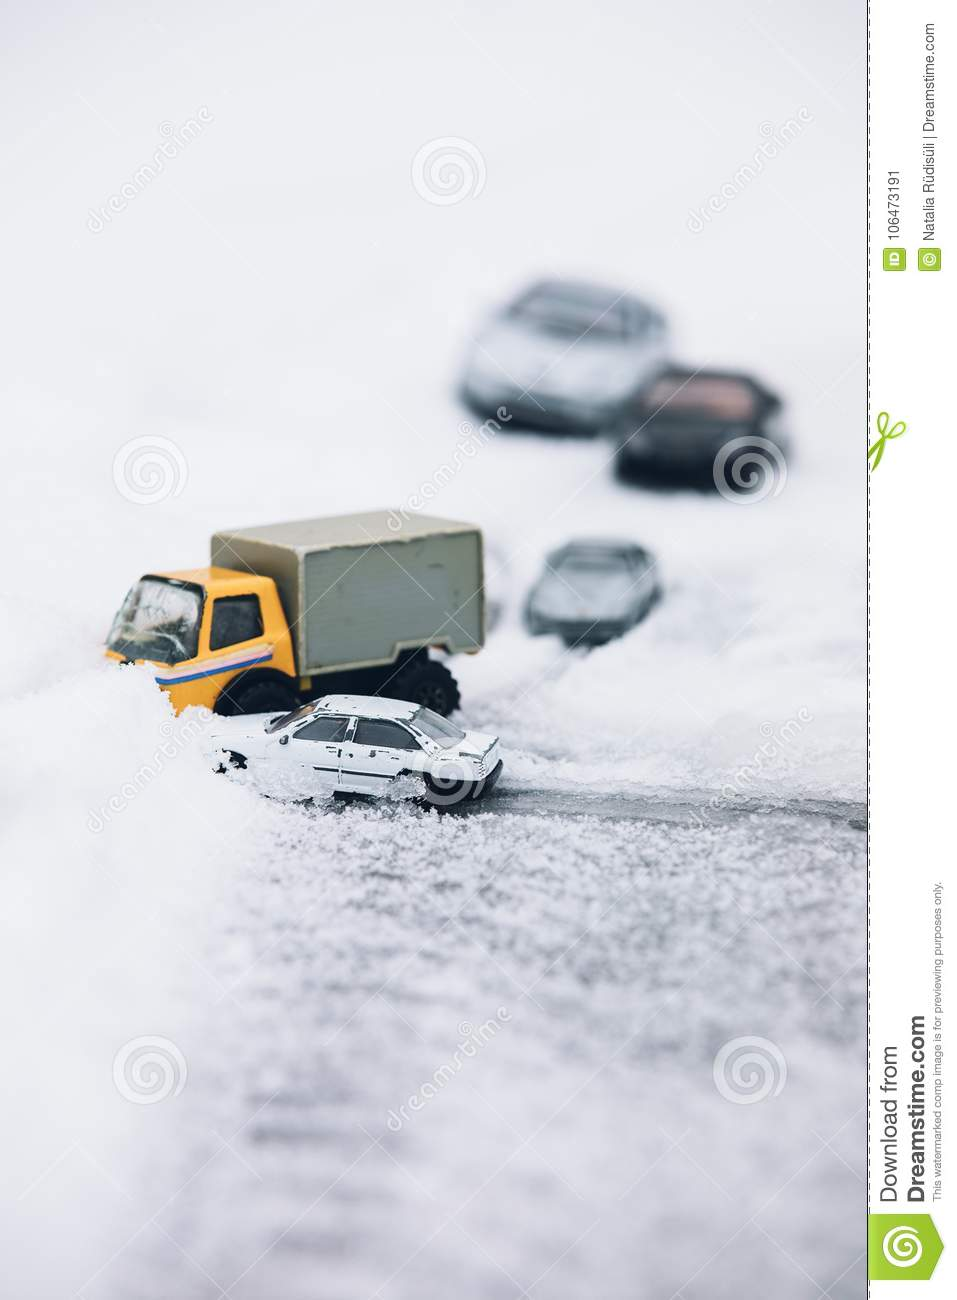 Symbolic car accident in winter on snow road staged with toy car